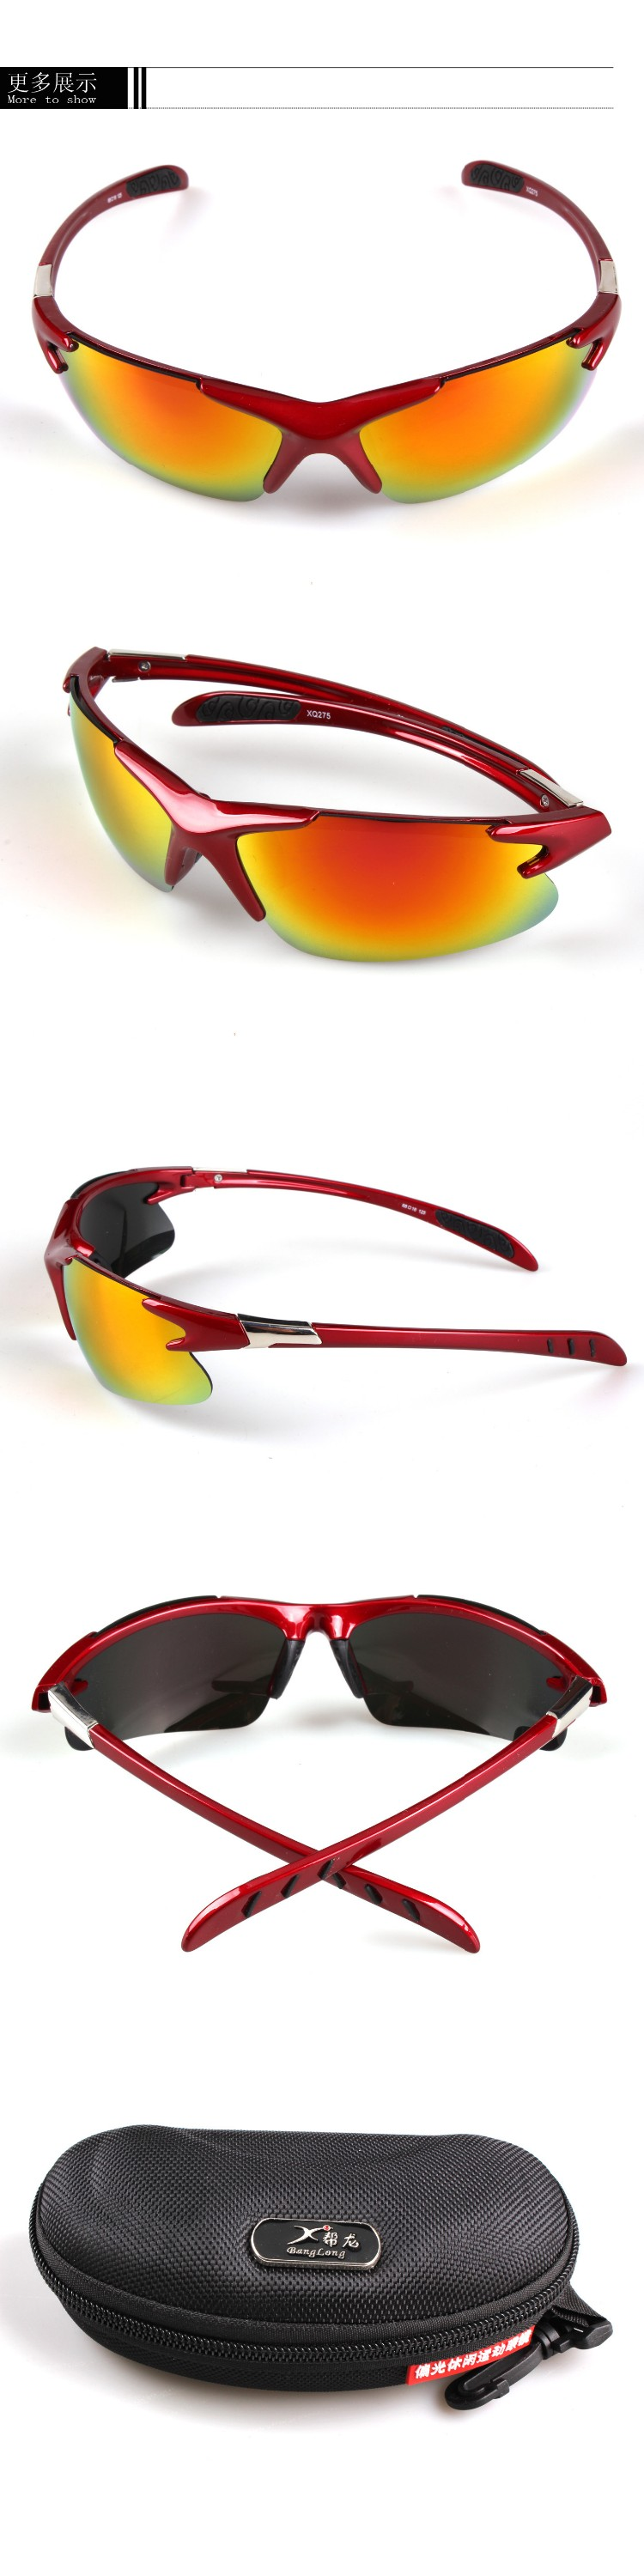 2017 China Factory Wholesale Sunglasses Cycling Outdo Sports Sunglasses Polarized